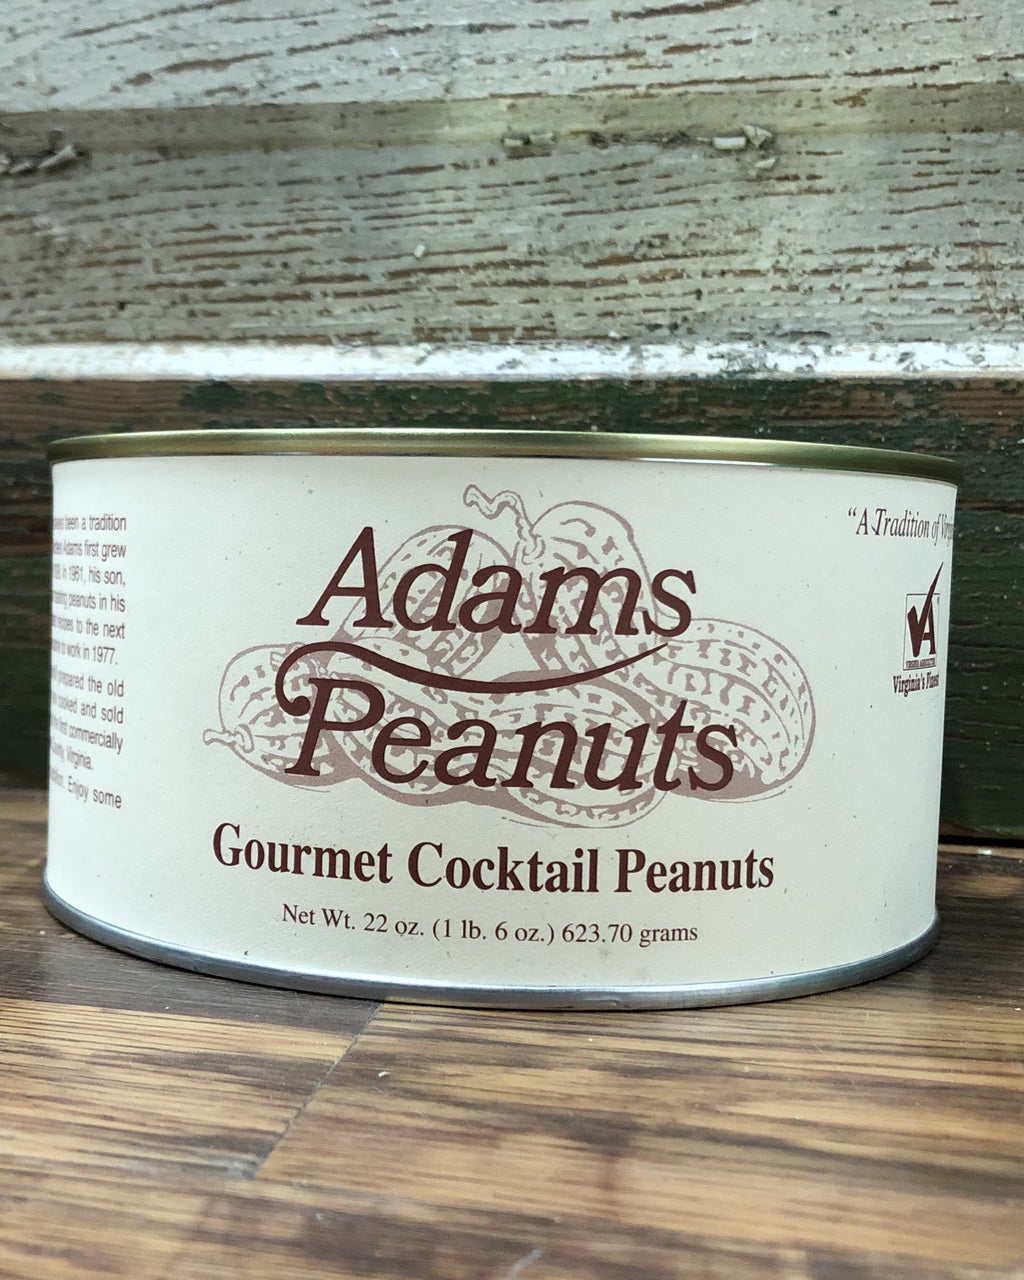 Salted Cocktail Peanuts